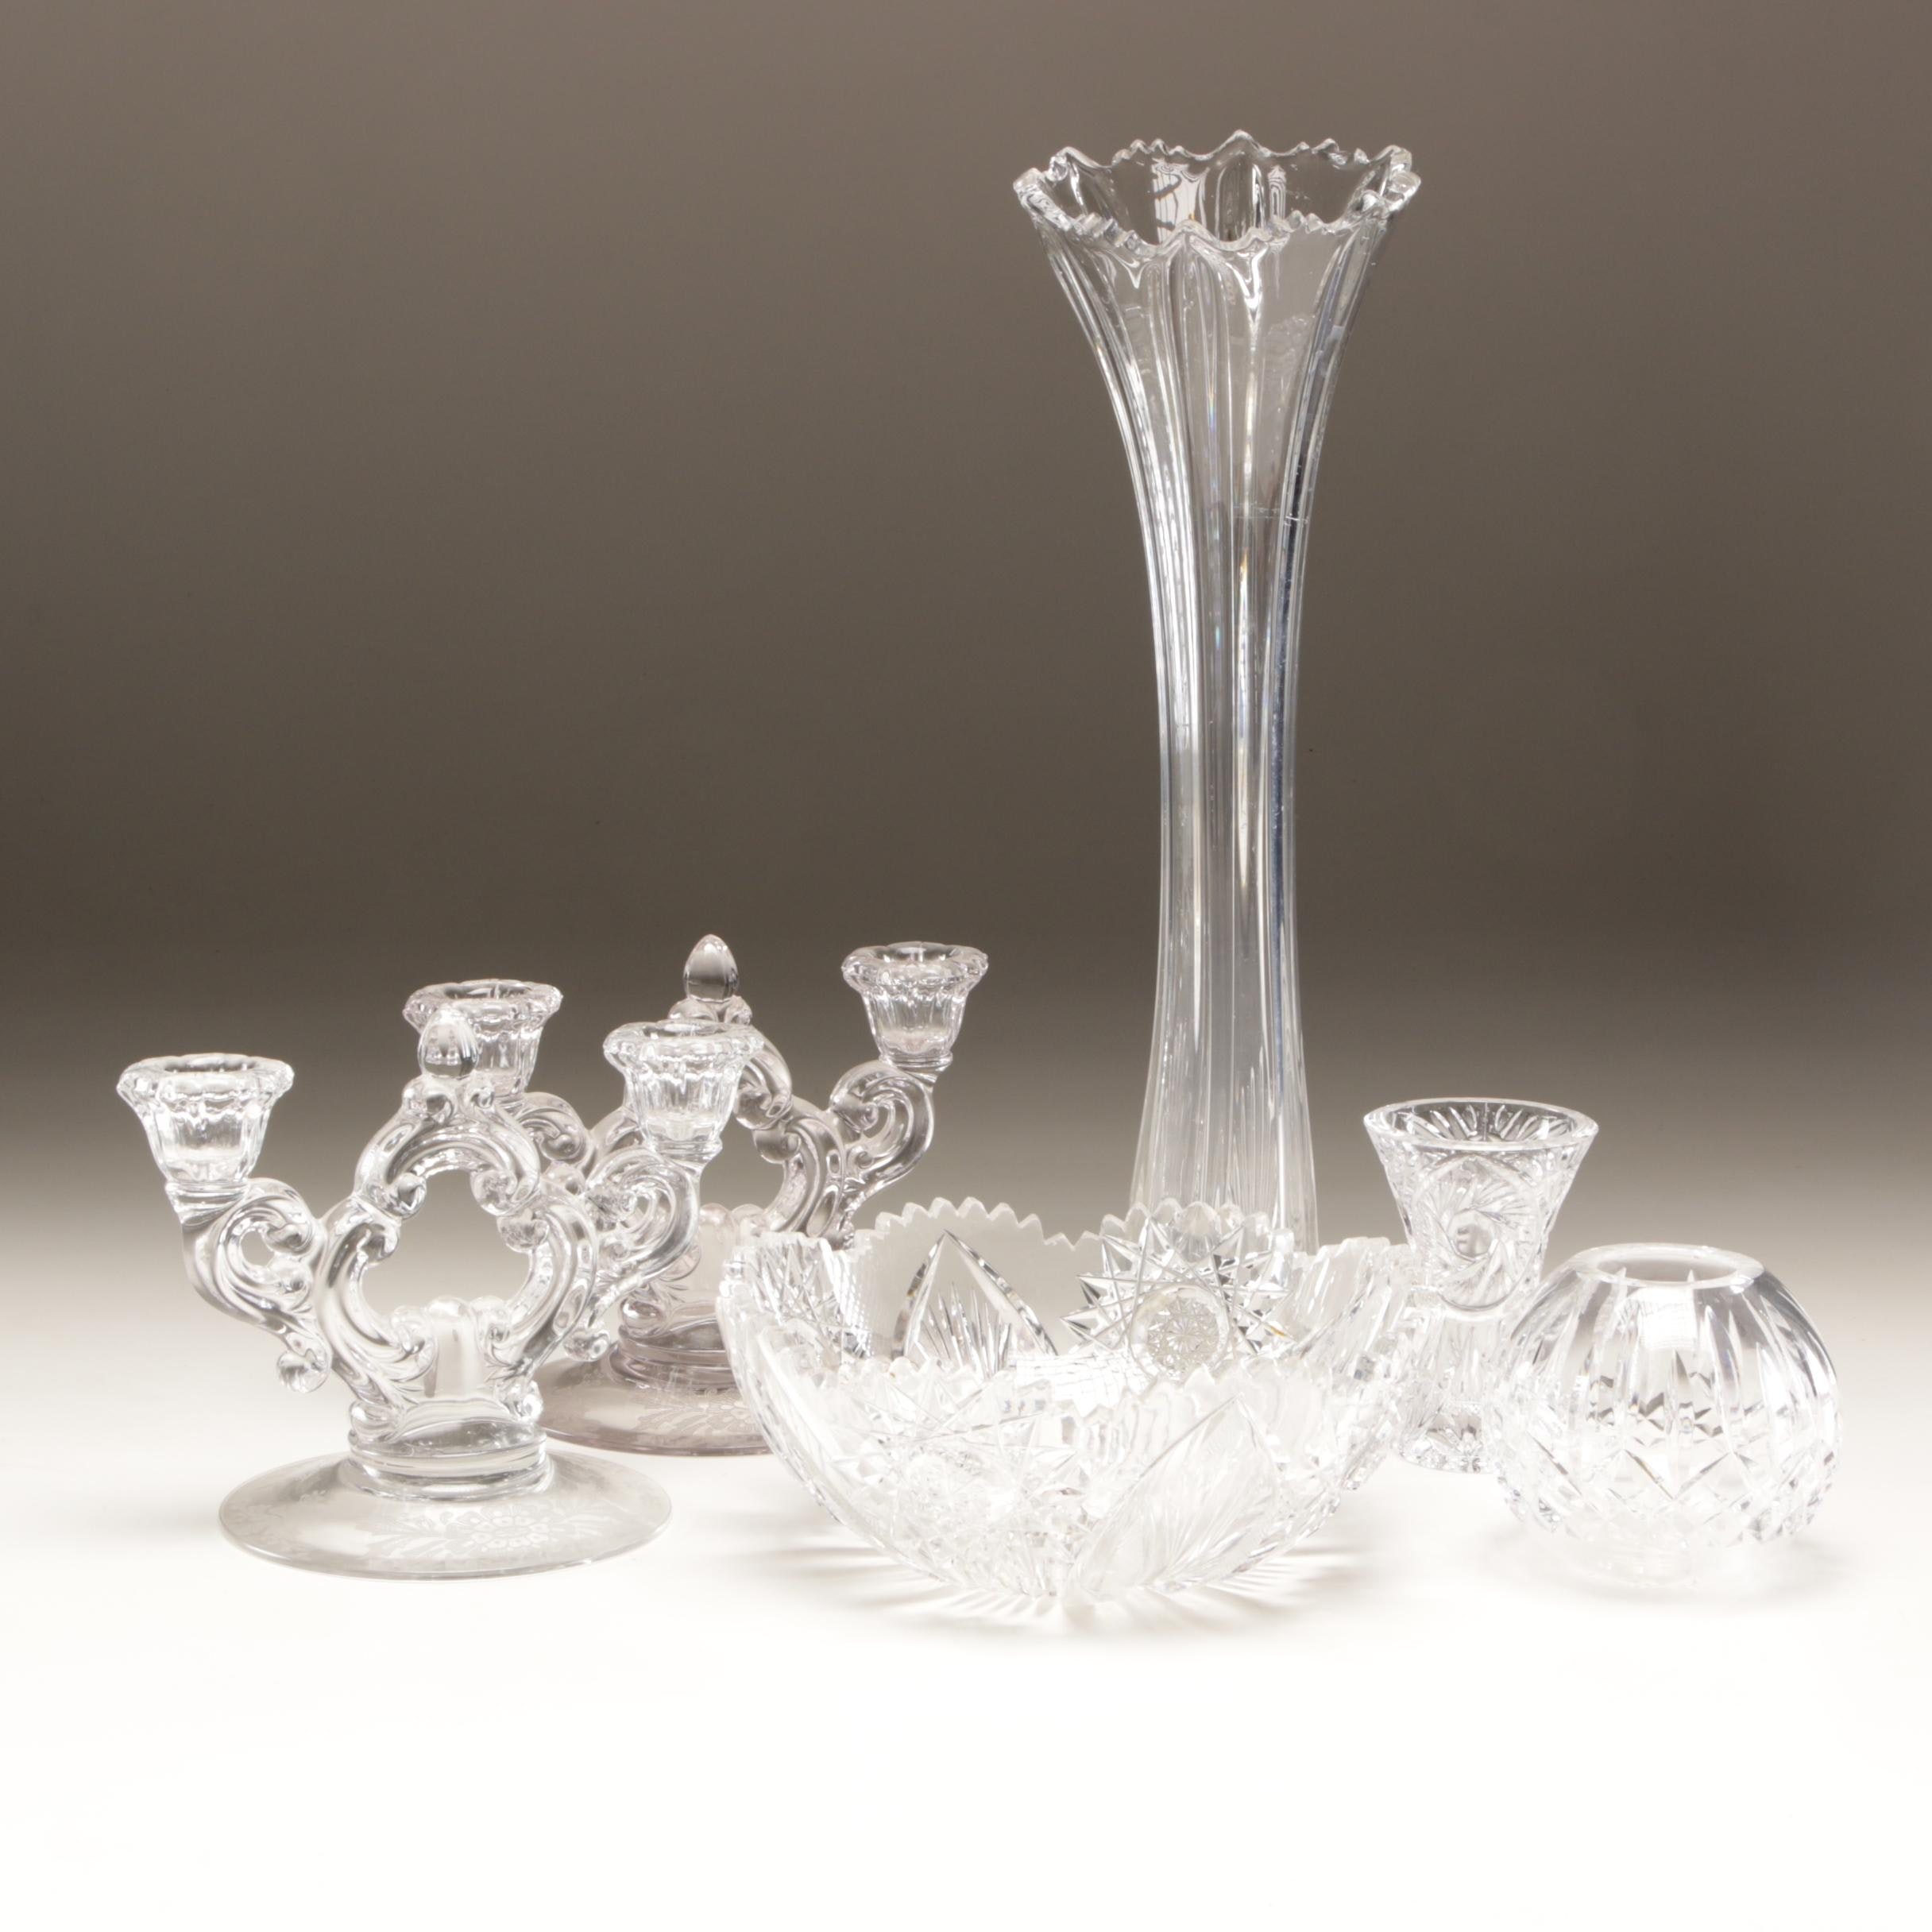 Cut Glass and Crystal Table Decor Featuring Waterford Crystal Bud Vase